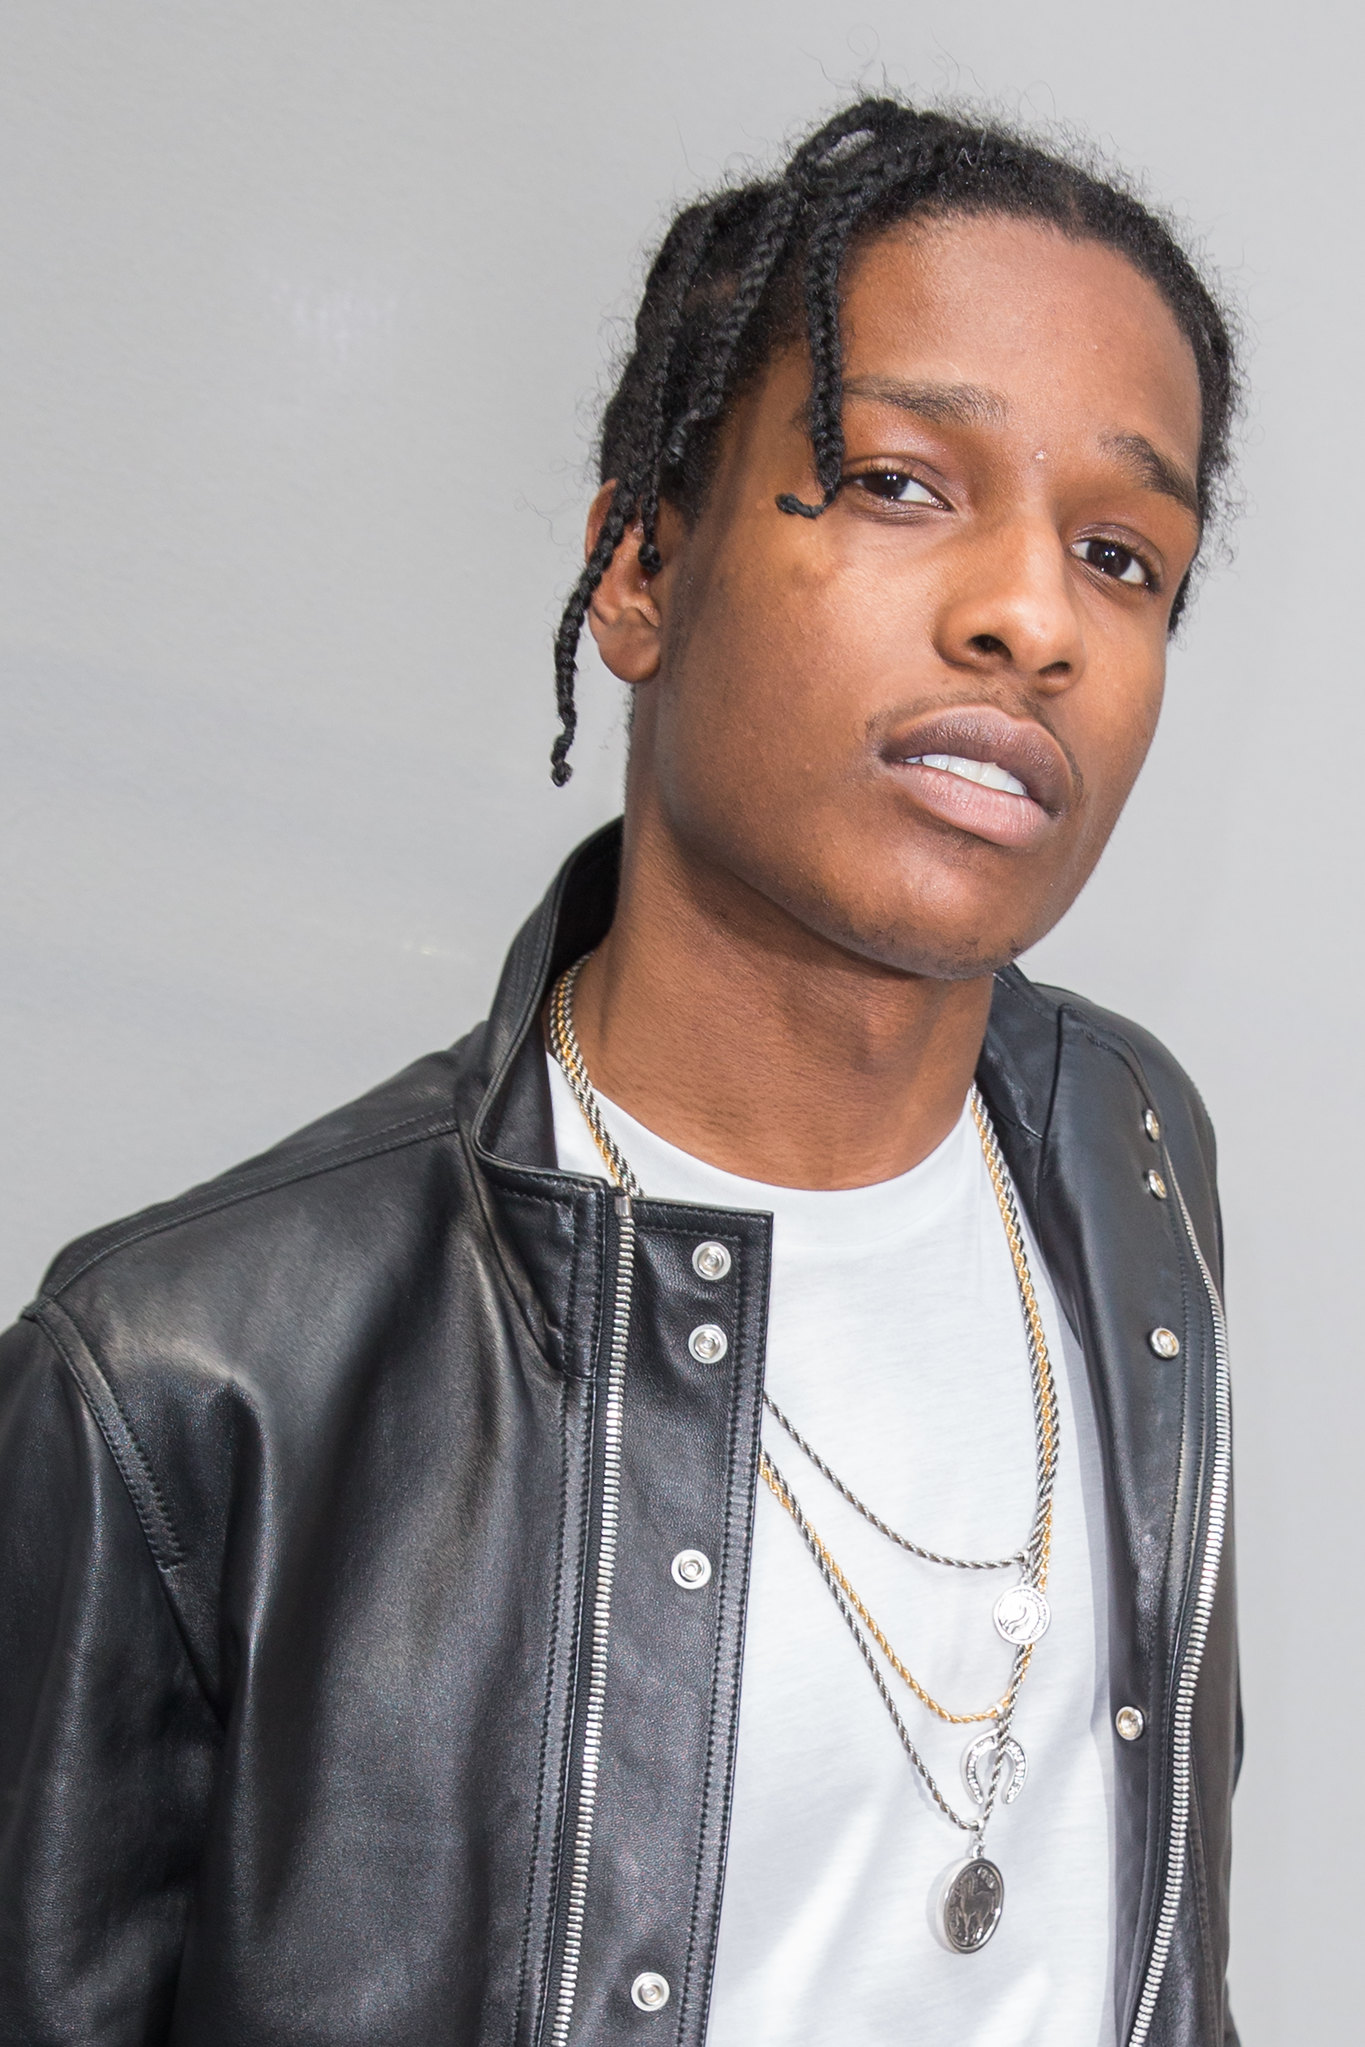 Asap Rocky Hairstyle Name | Fade Haircut